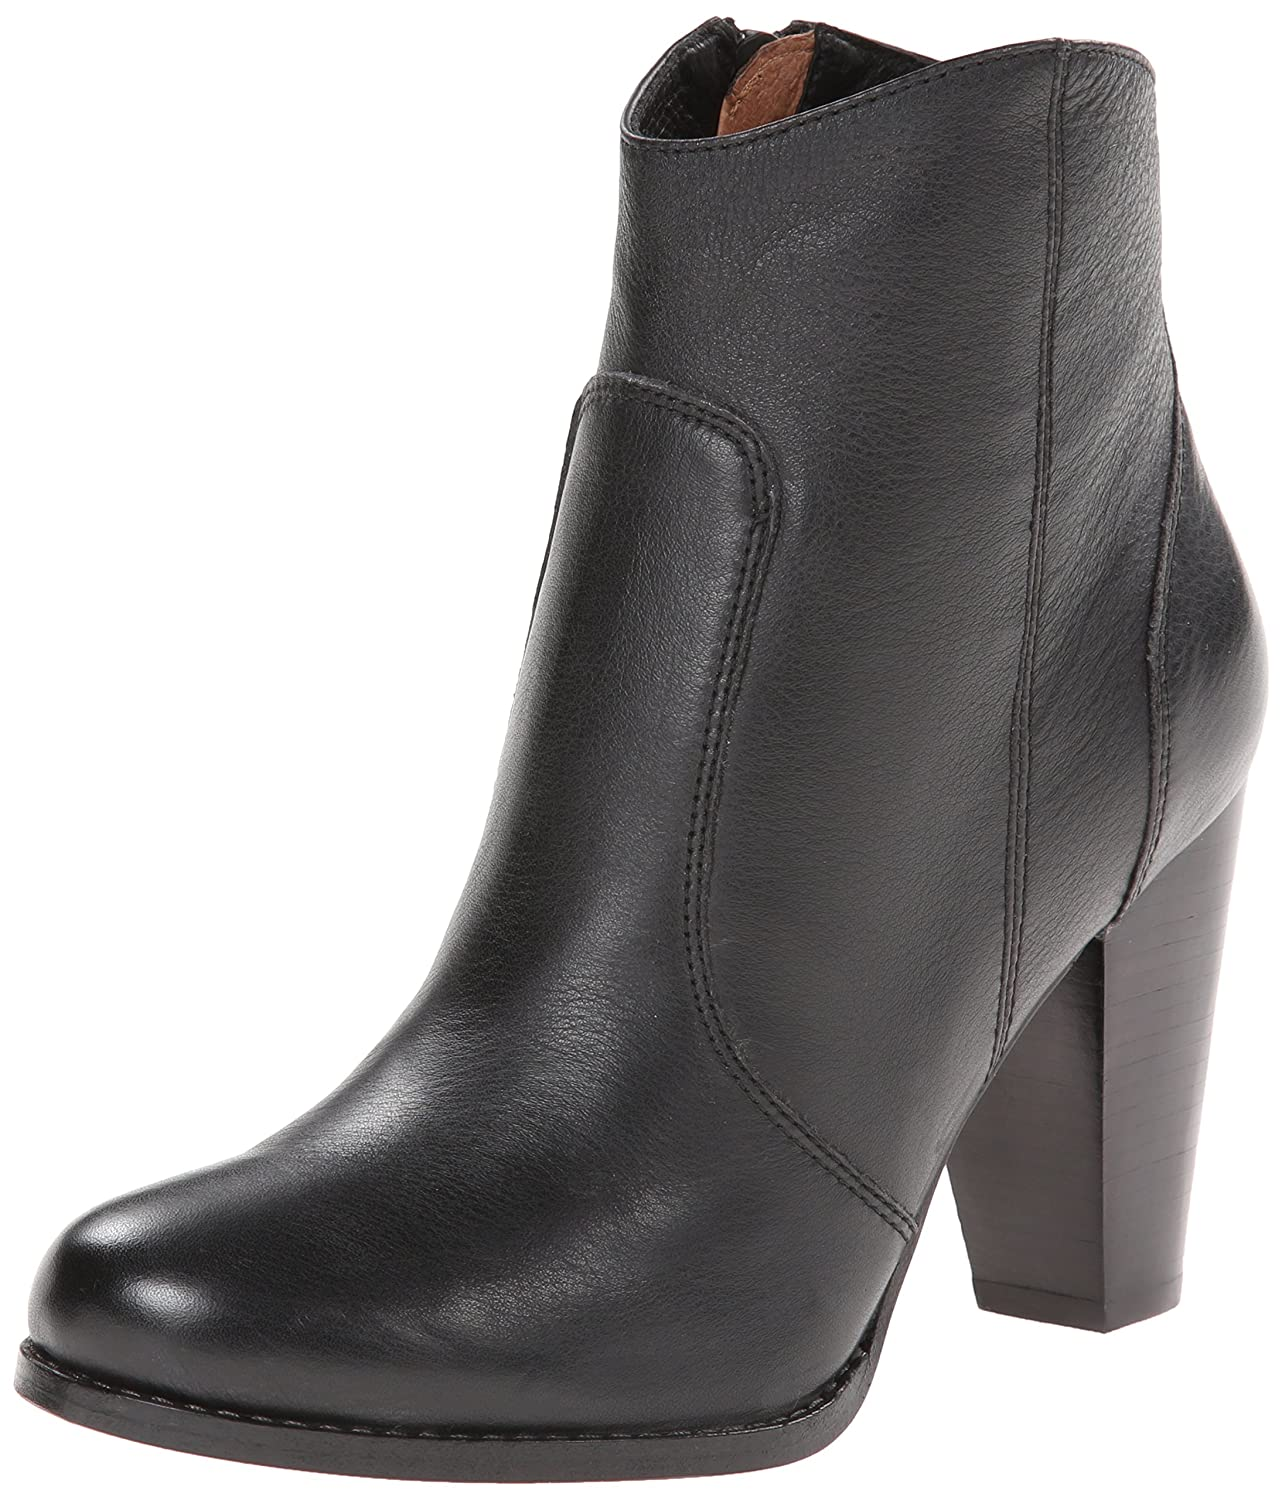 Joie Women's Dalton Bootie B00LXW9IWK 35 M EU / 6 B(M) US|Black Leather